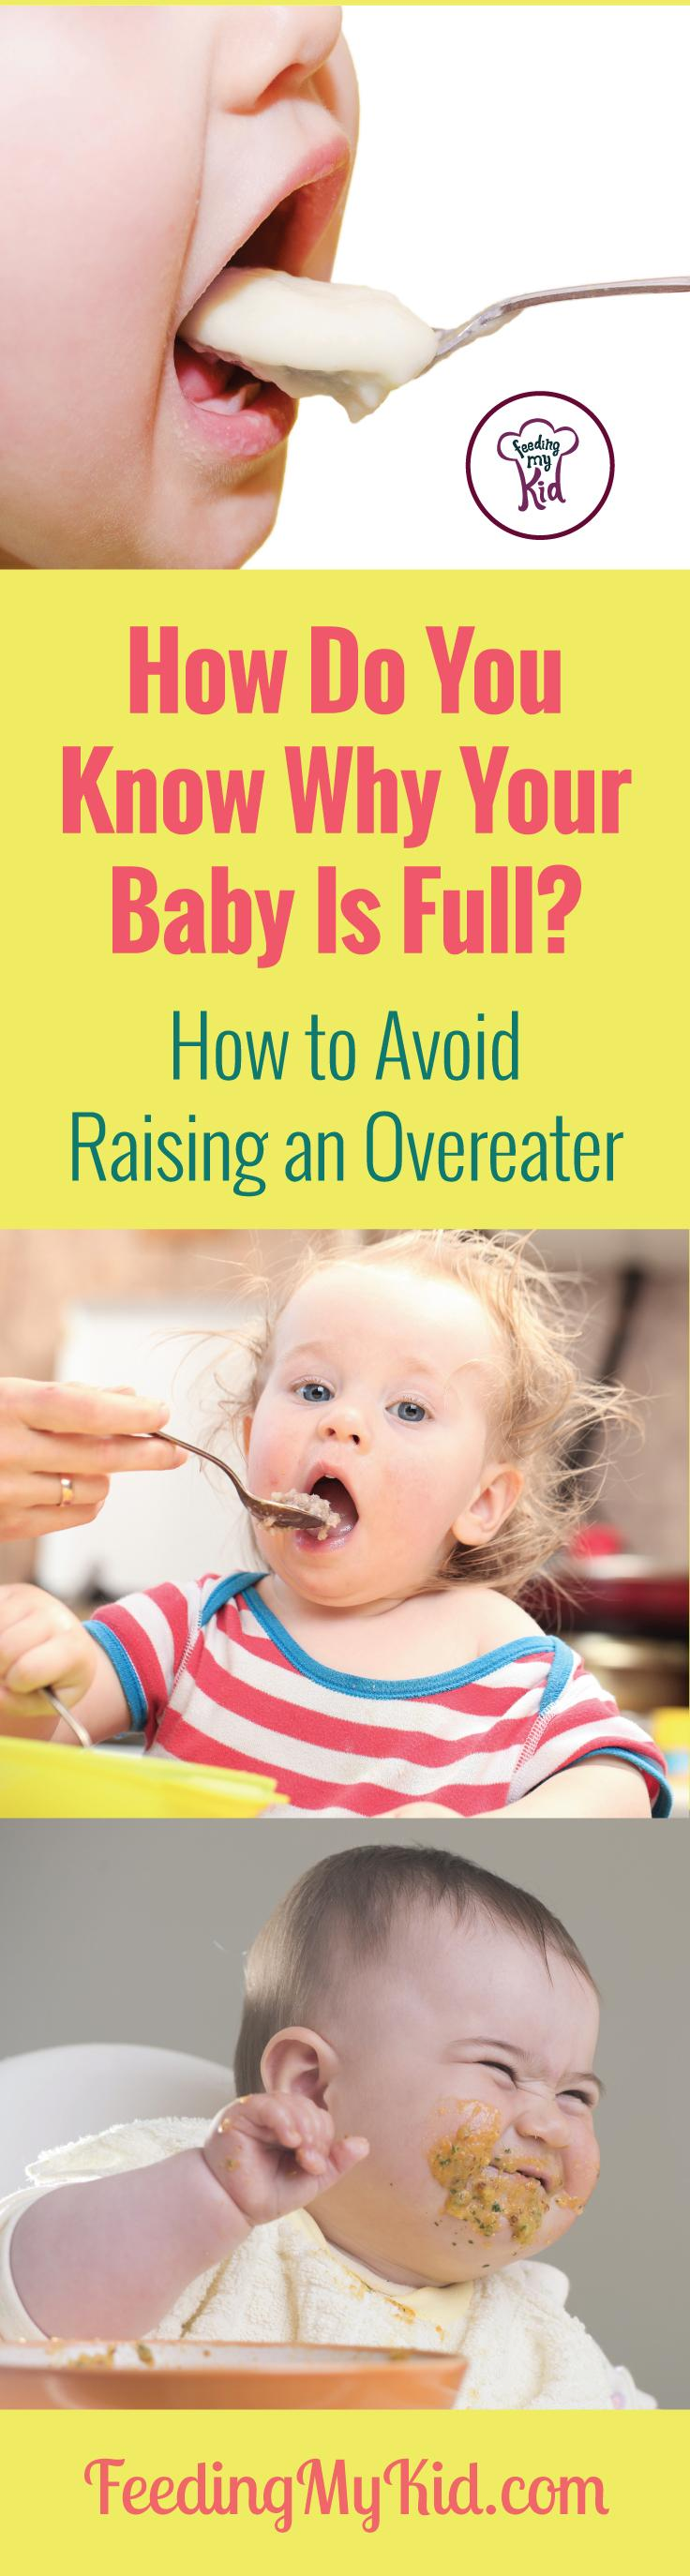 This is good info to know so you can avoid having your child become an overeater. How Do You Know When Your Baby is Full.